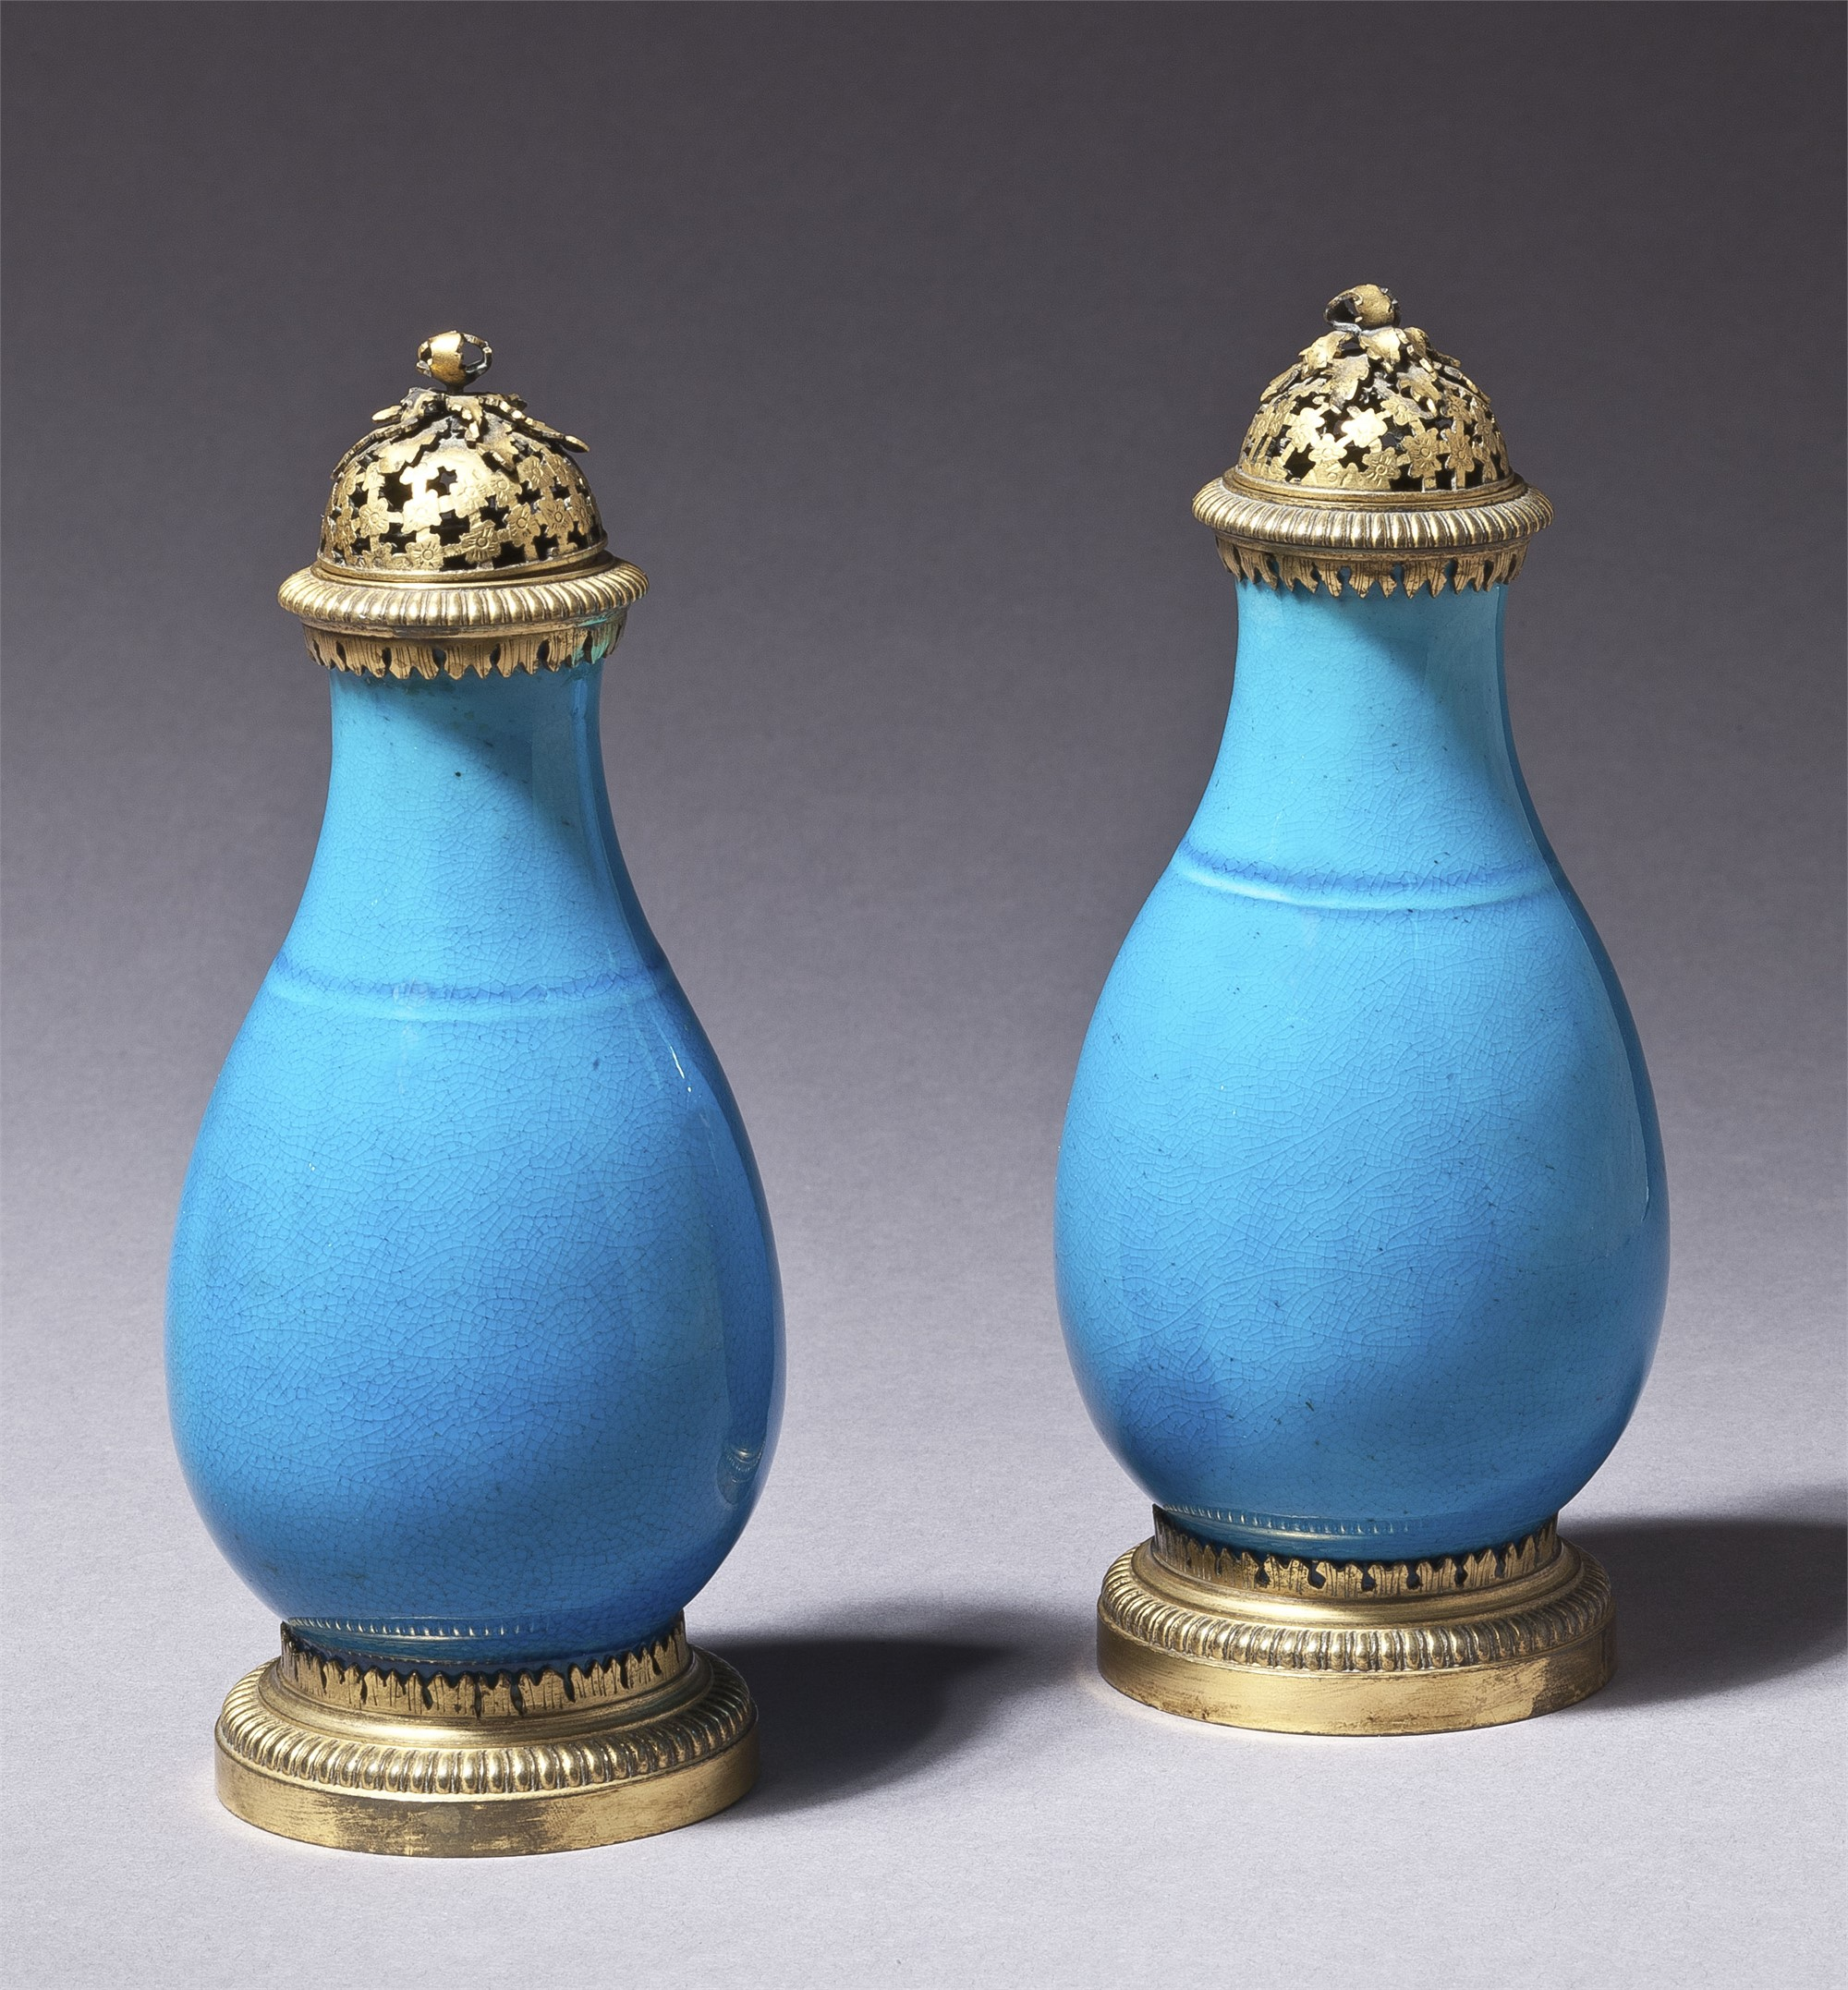 PAIR OF CHINESE GILT METAL MOUNTED TURQUOISE GLAZED PORCELAIN PERFUMERS